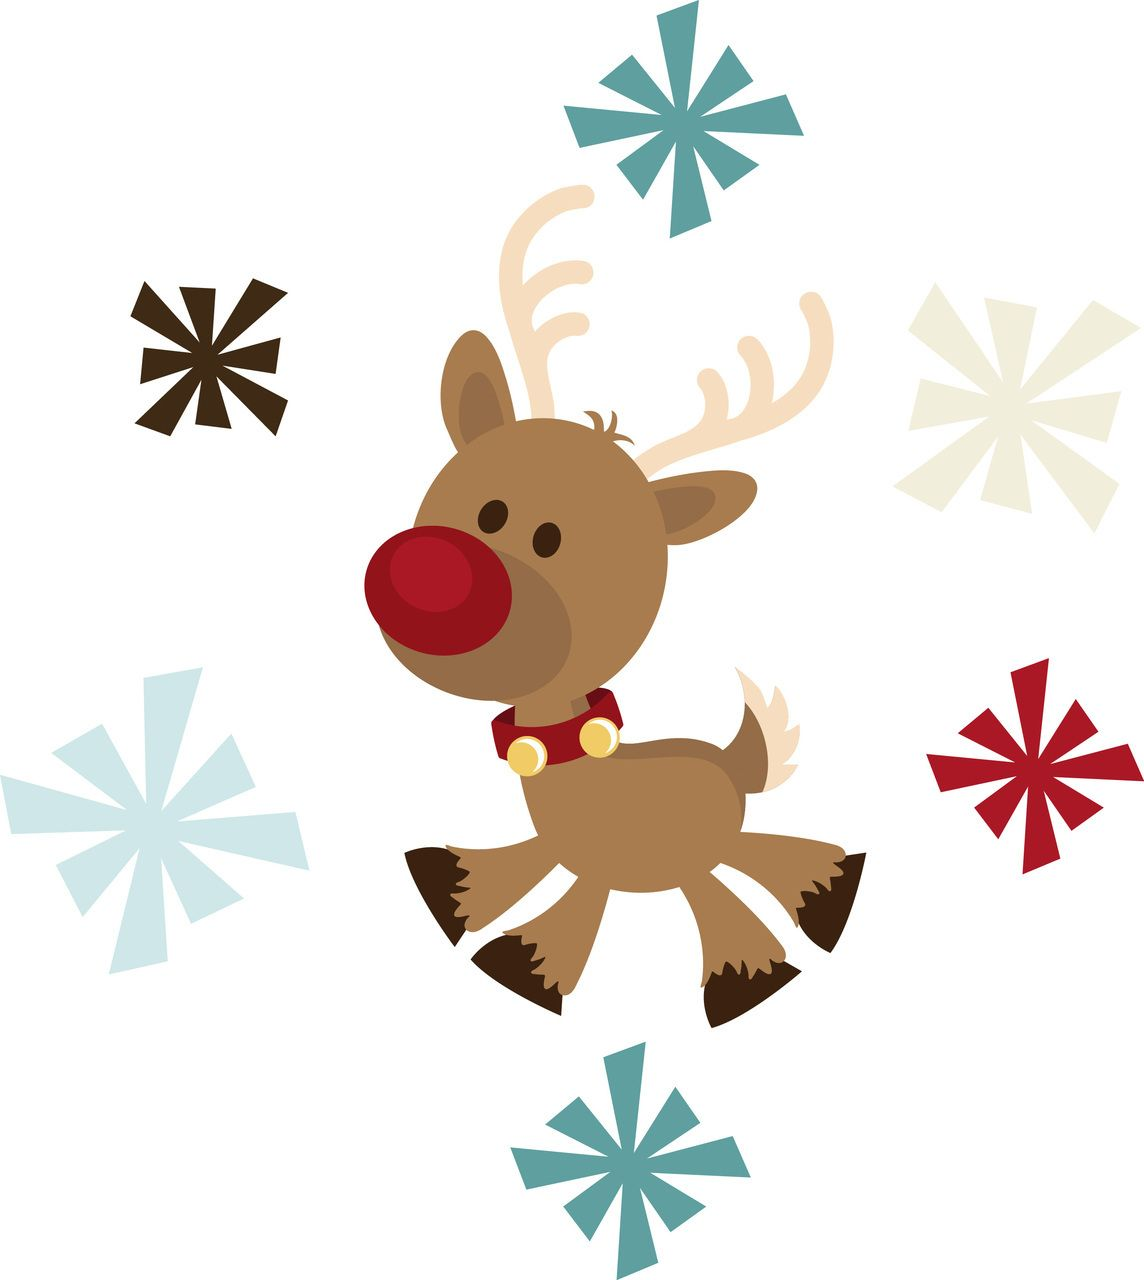 Rudolph clipart baby. Ppbn designs flying off